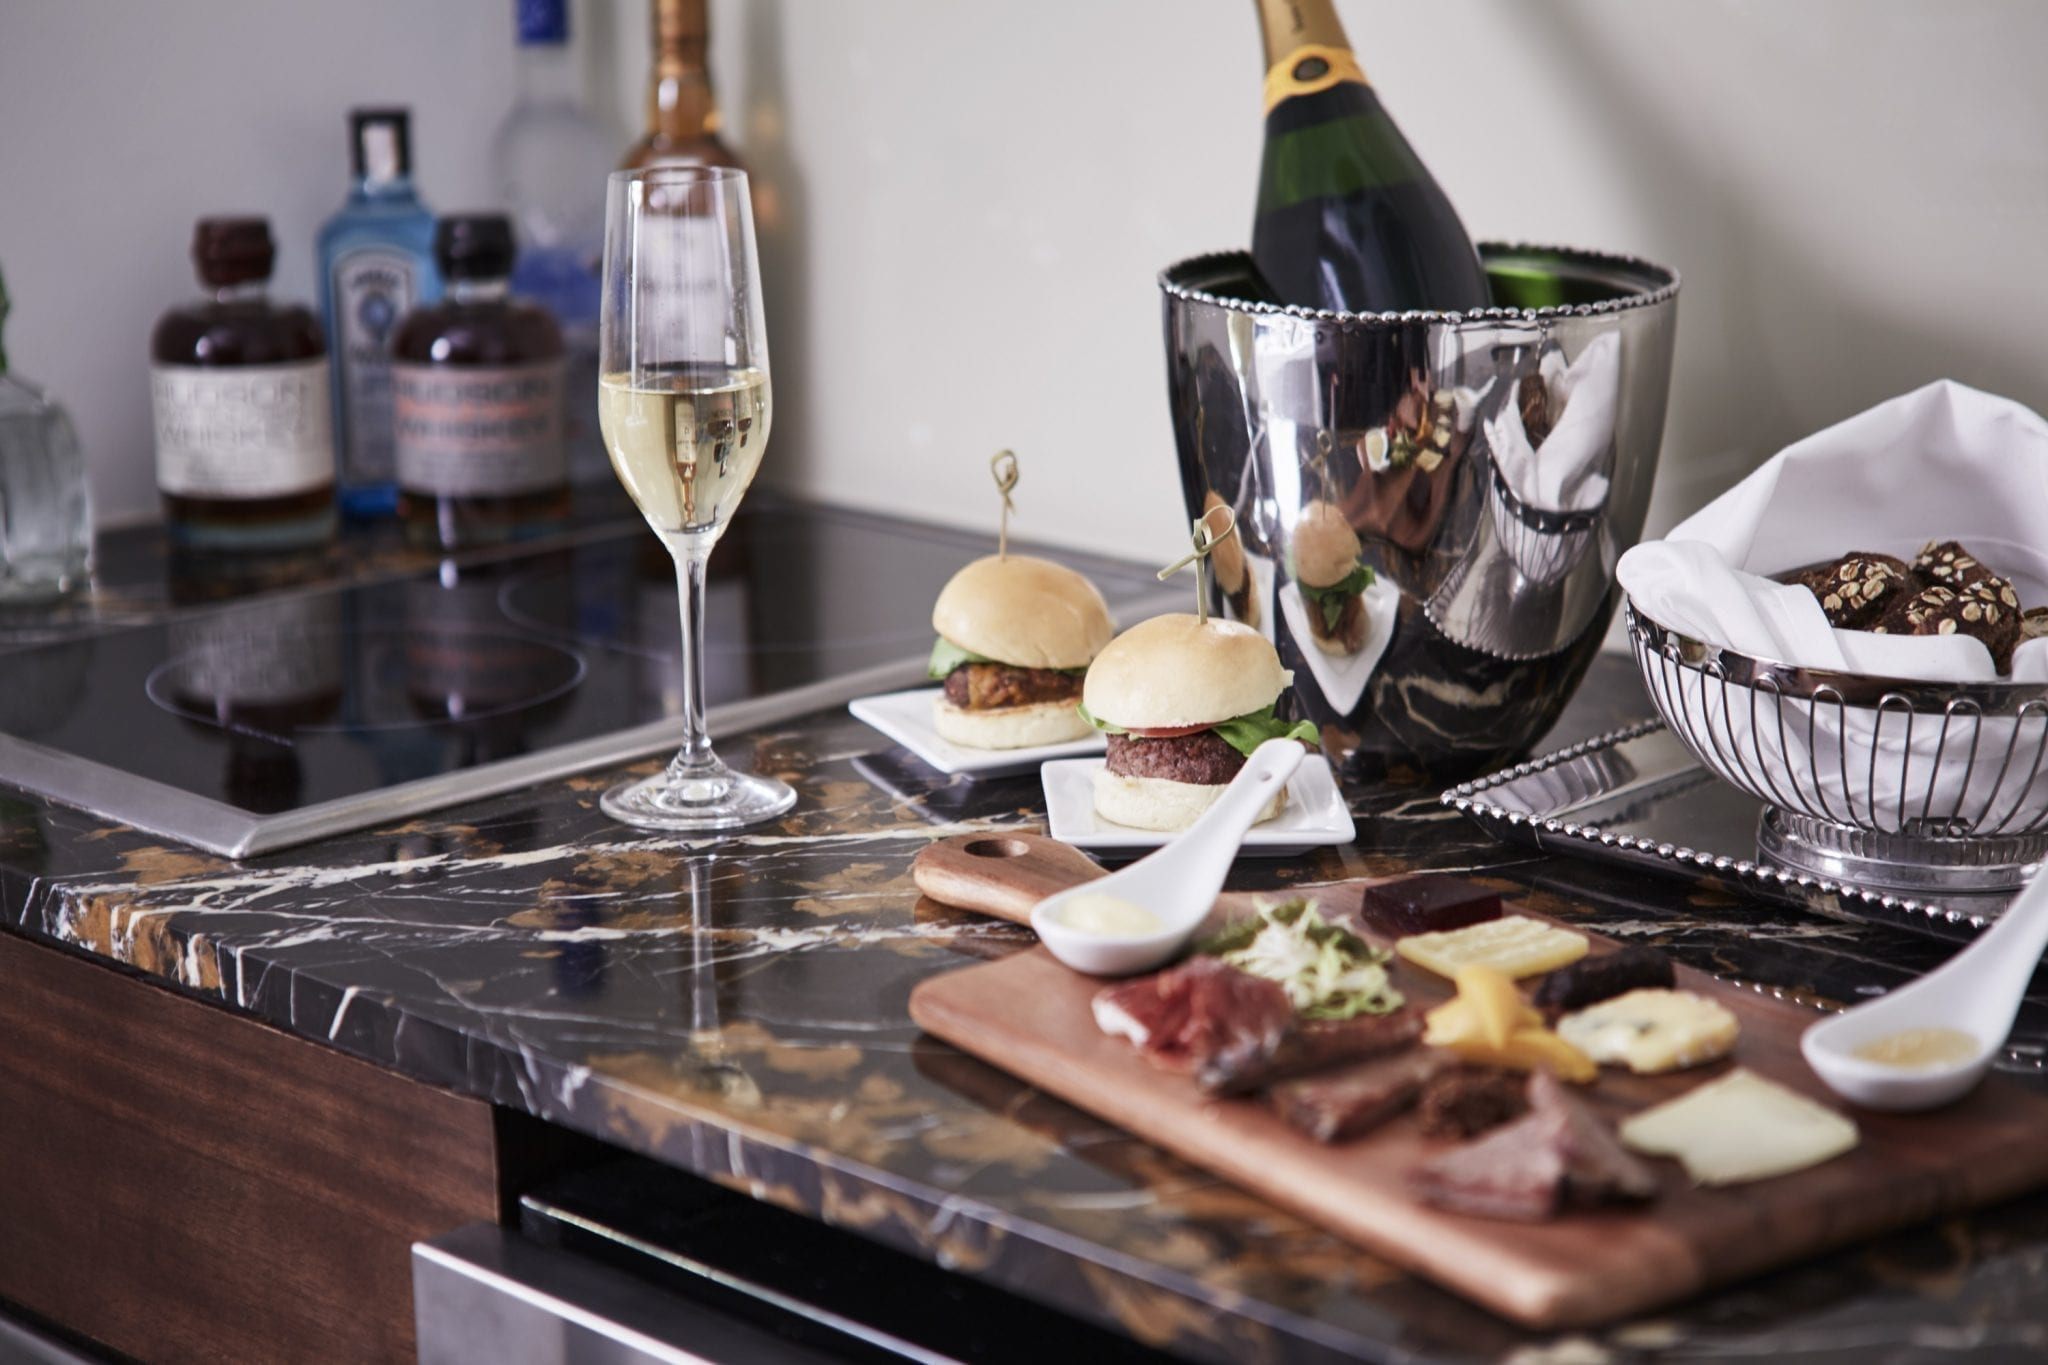 Close up of the marbled kitchen counter top inside The Surrey Hotel's Studio Suite. A cutting board holds cheeses and meat, with two burgers prepared on small square trays. A bread basket is uncovered, placed just to the right of the wine's ice bucket. A single wine flute has been filled, with twin burners on the surface behind.